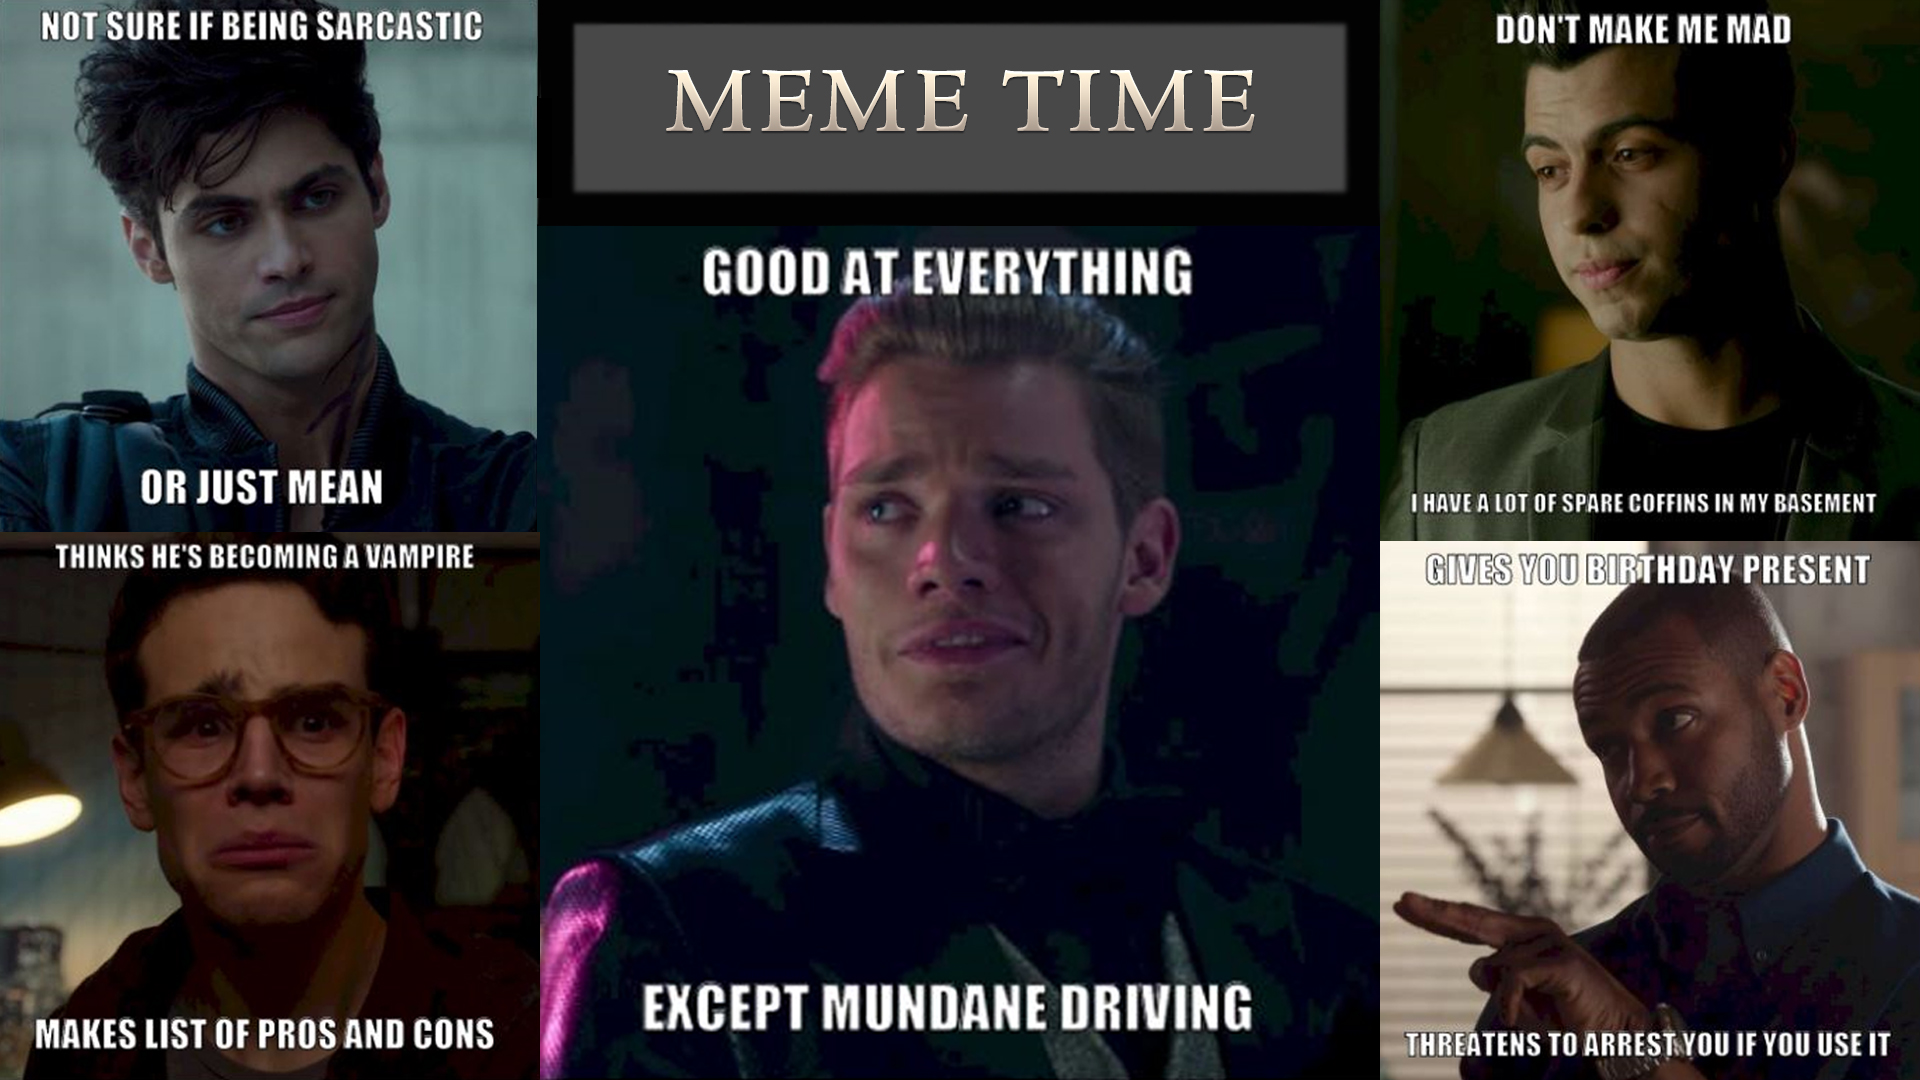 Always Wanted To Meme The Shadowhunters Boys Well Now You